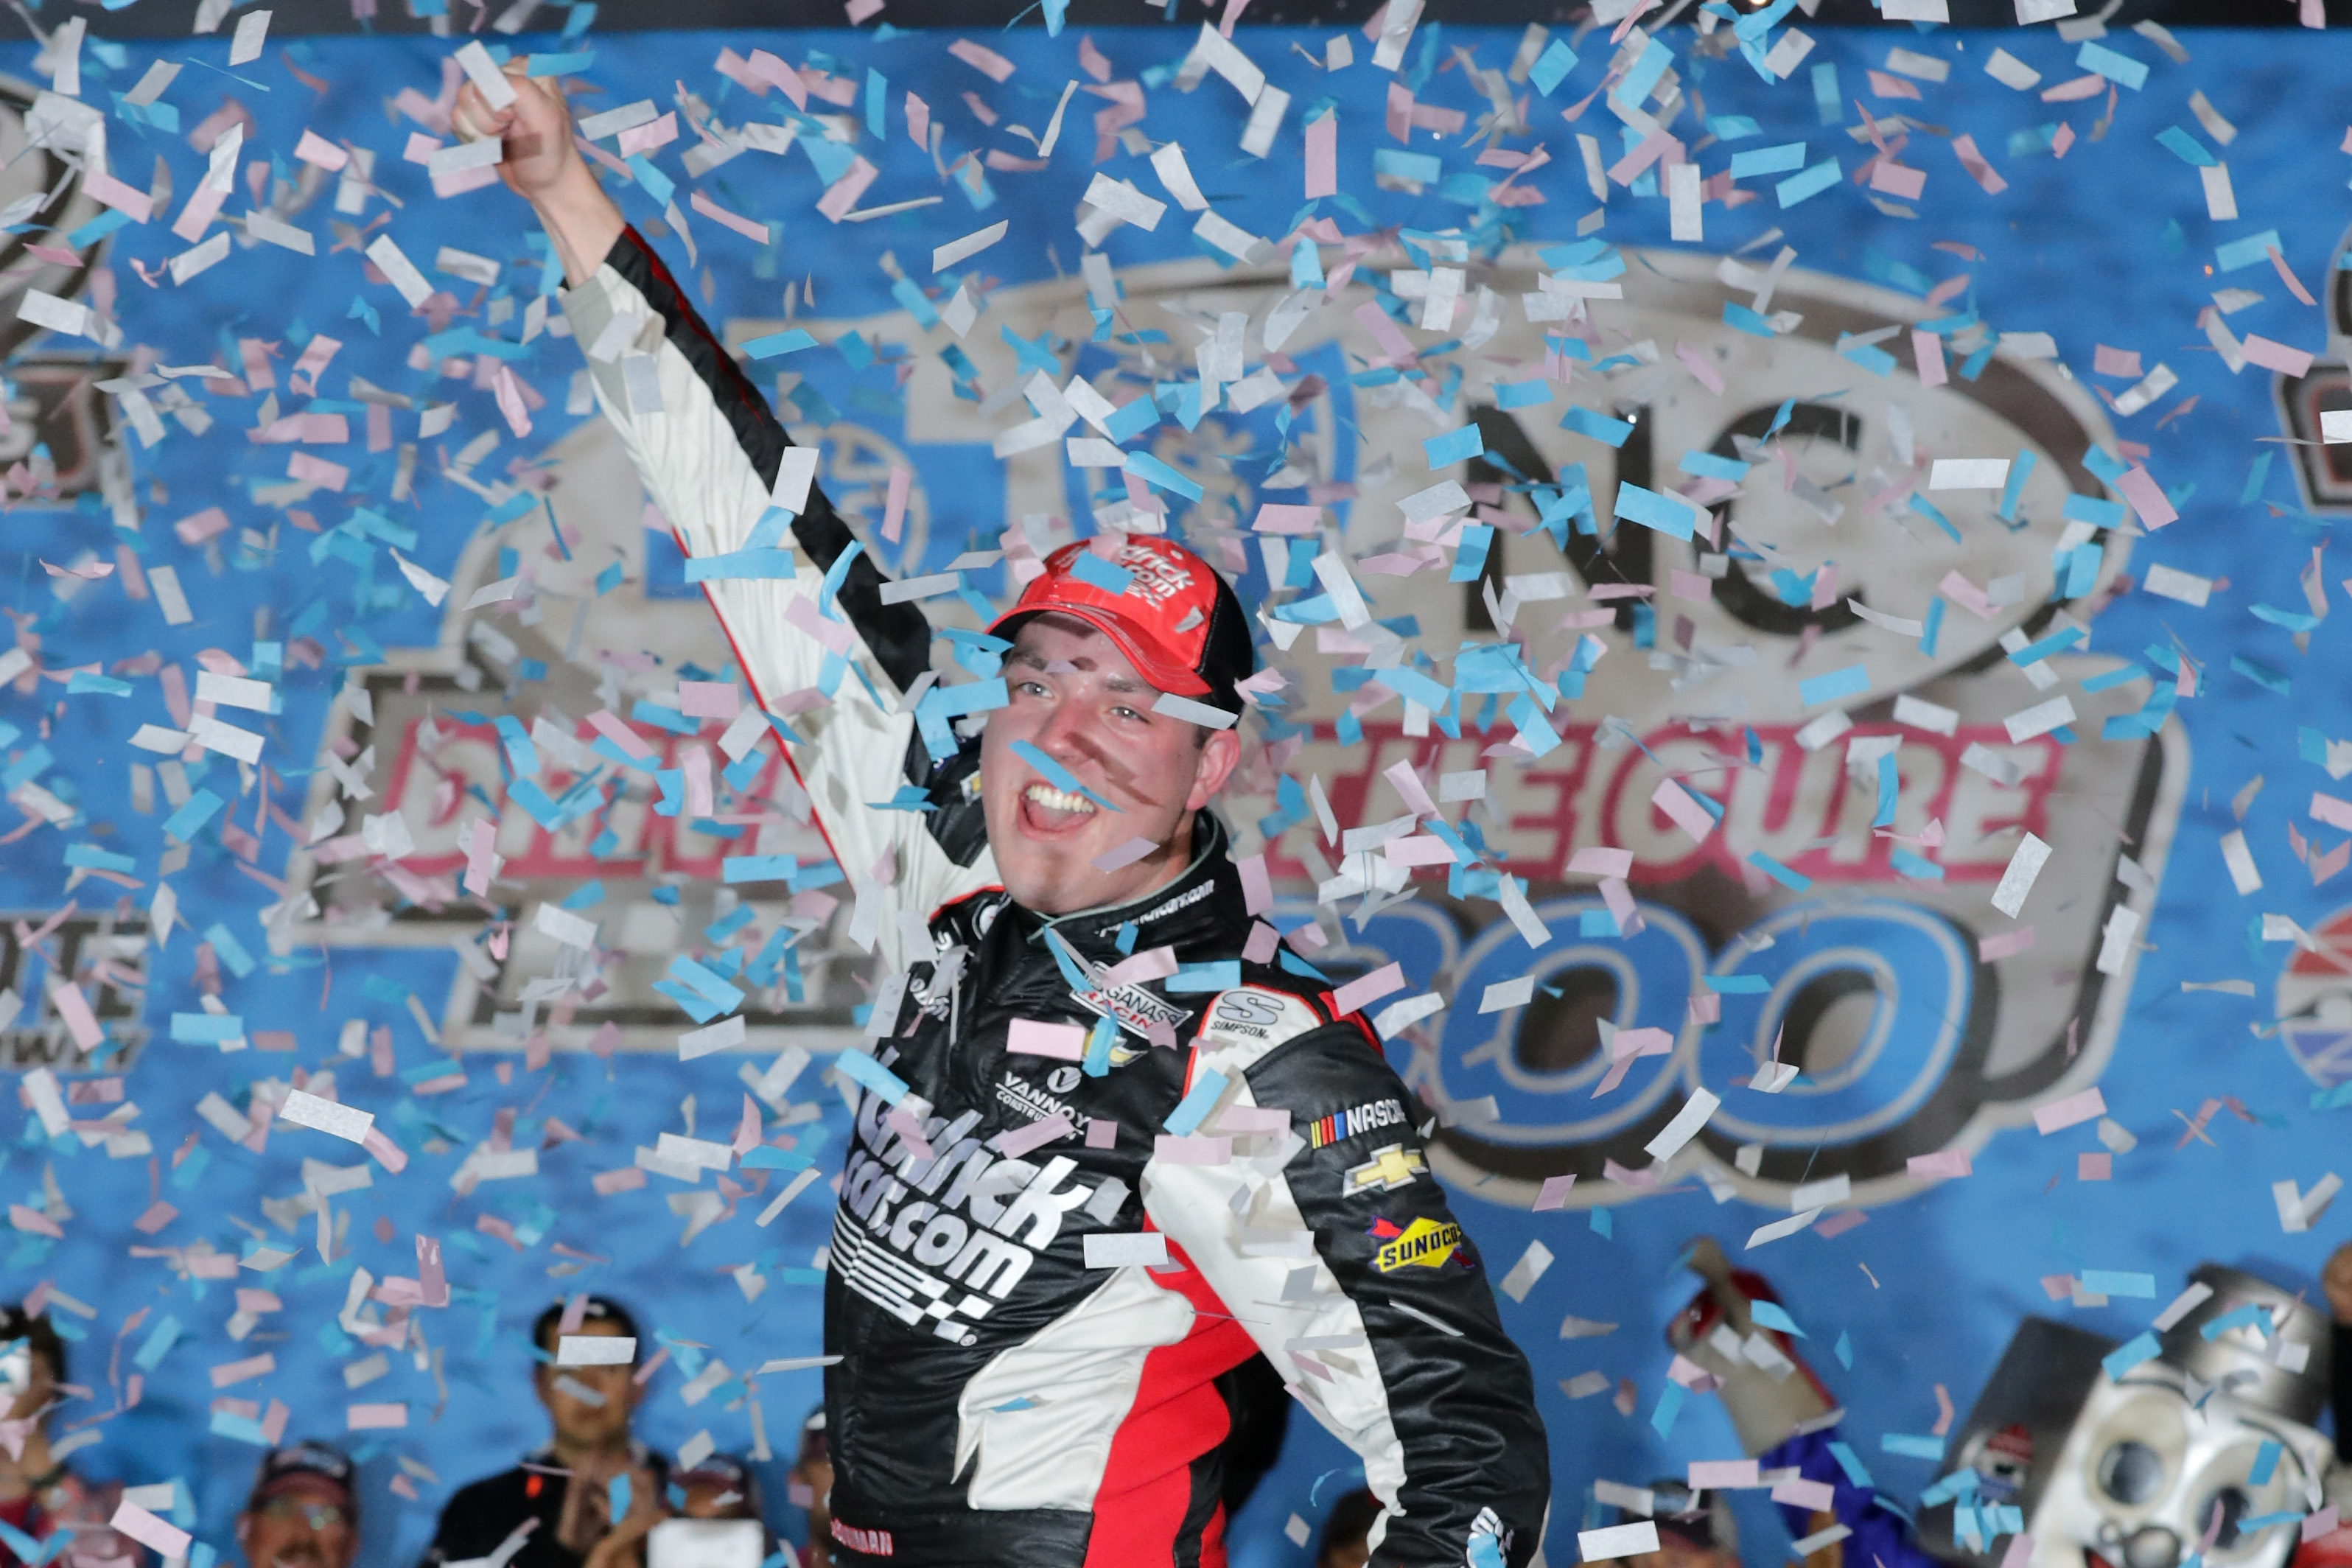 Saturday night at Charlotte, Bowman captures first career